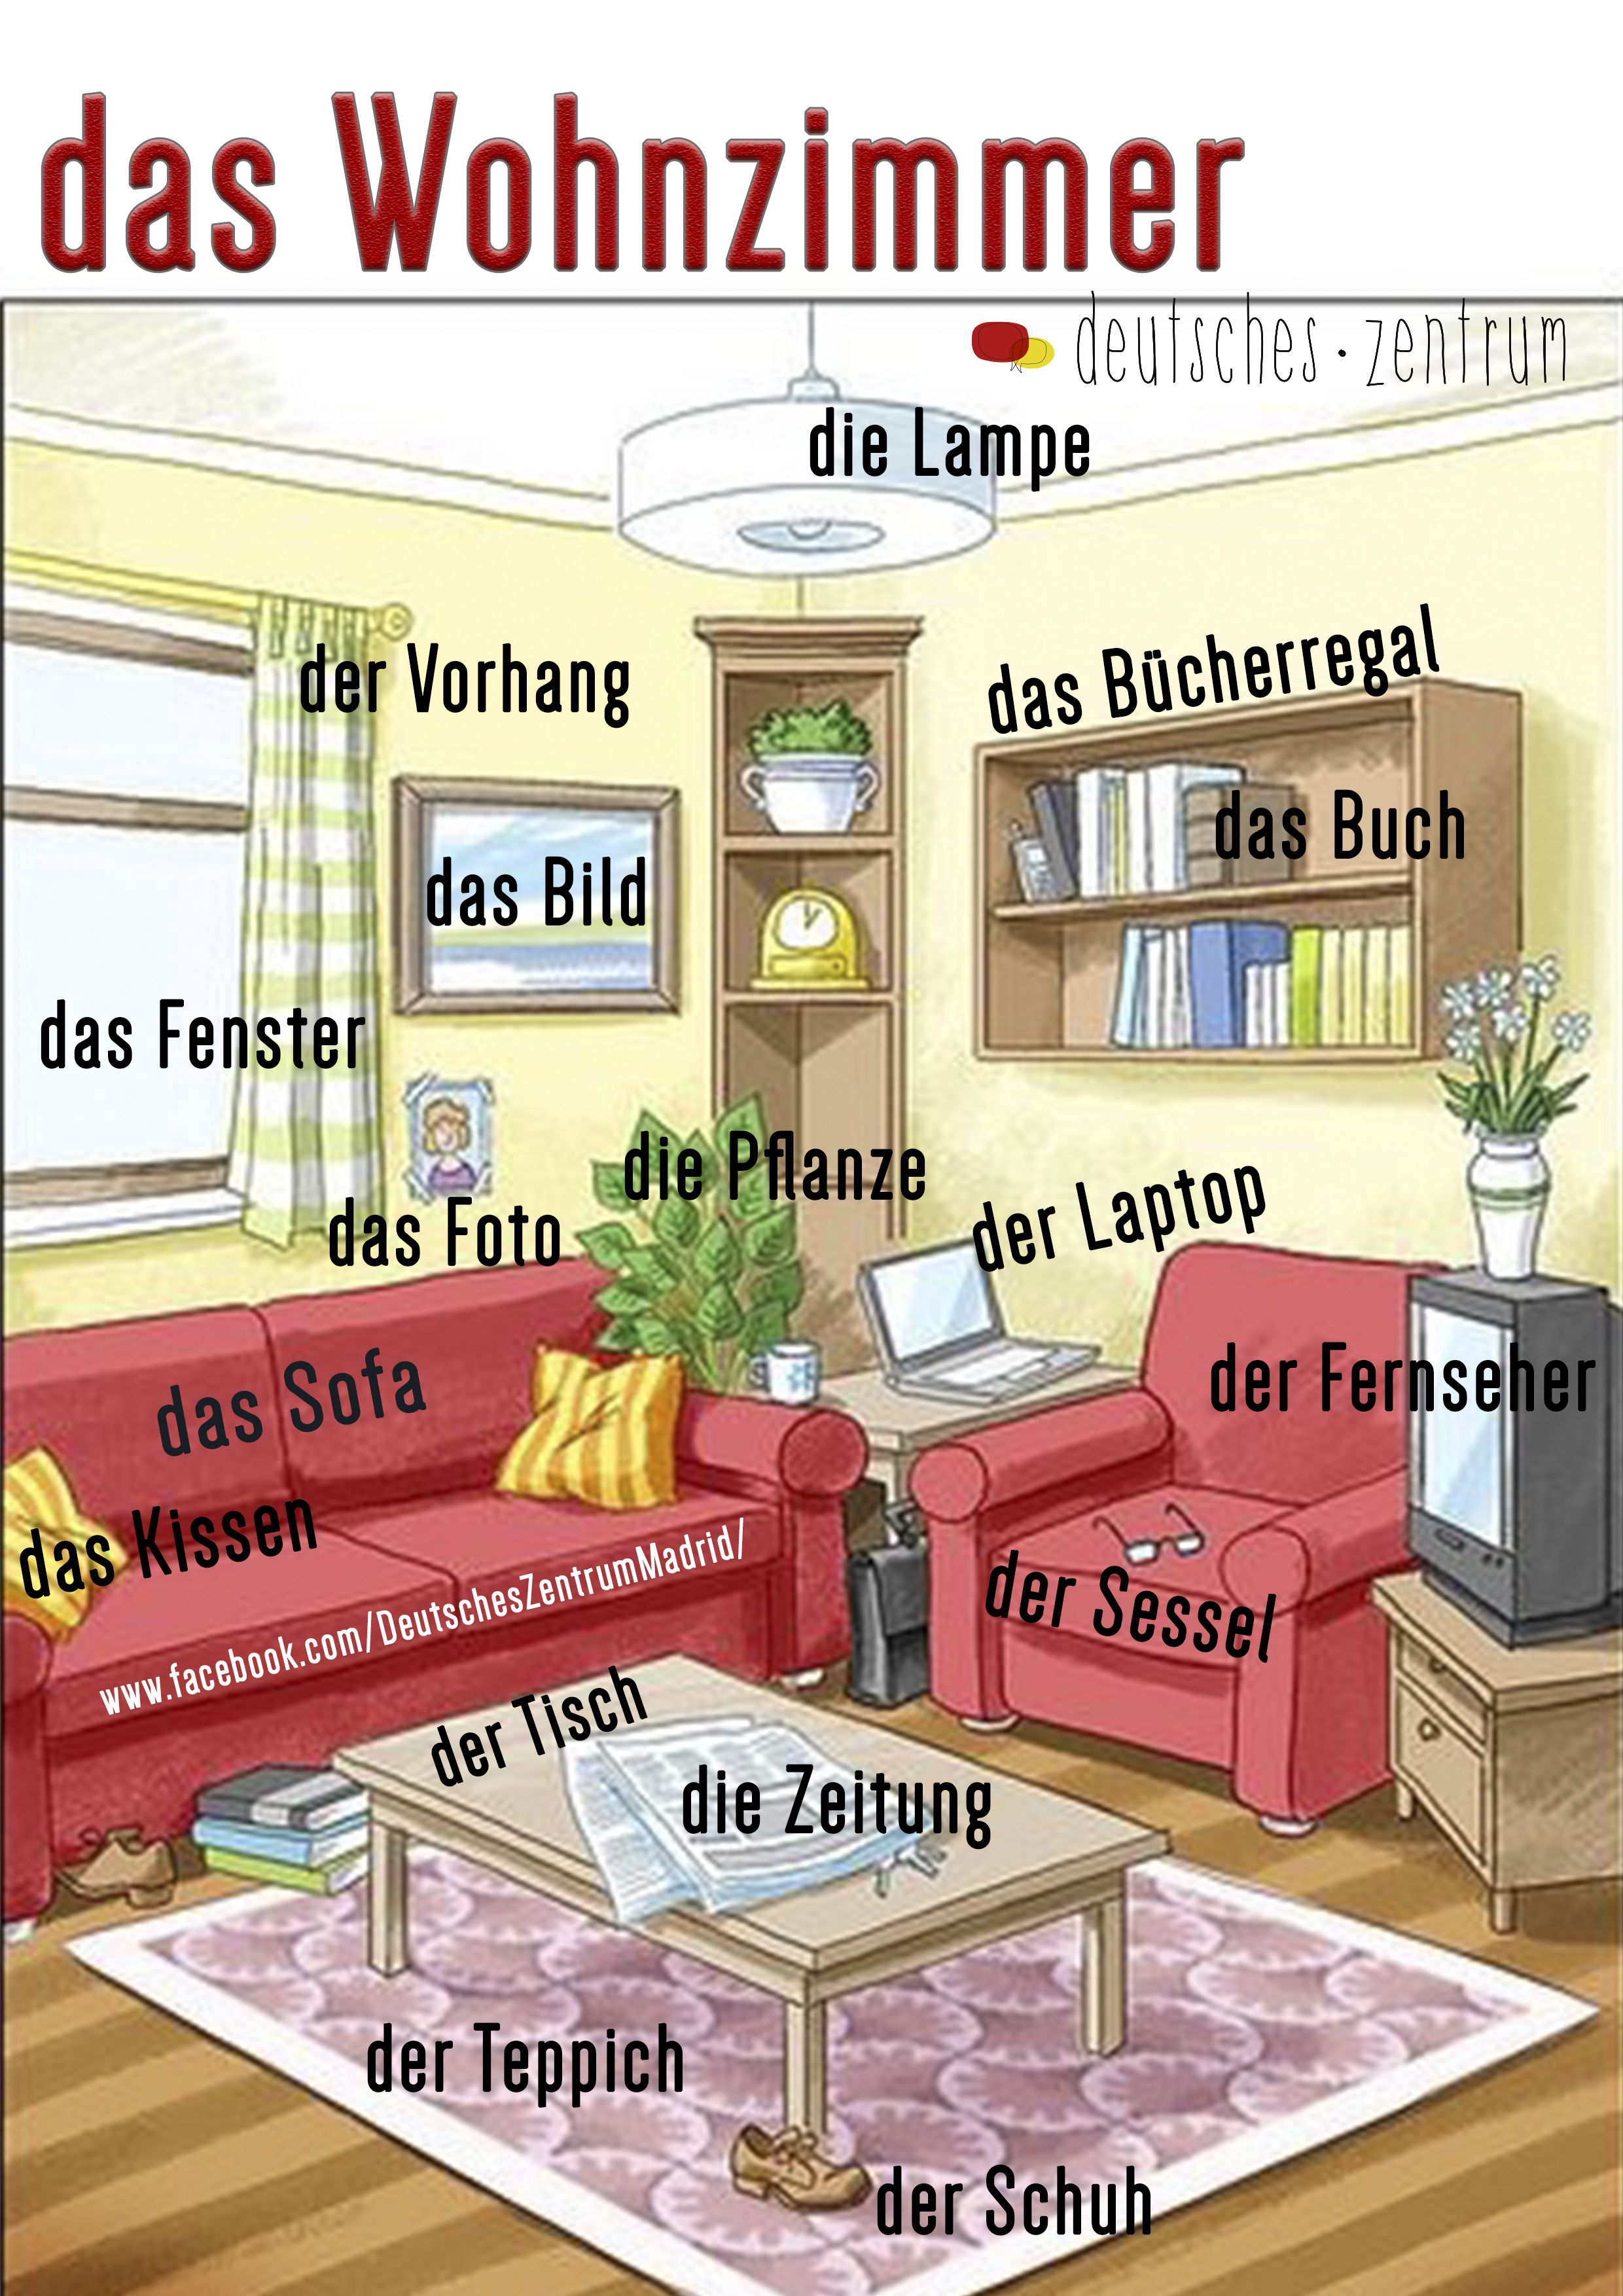 wohnzimmer deutsch wortschatz grammatik alem n german daf vocabulario daf pinterest. Black Bedroom Furniture Sets. Home Design Ideas